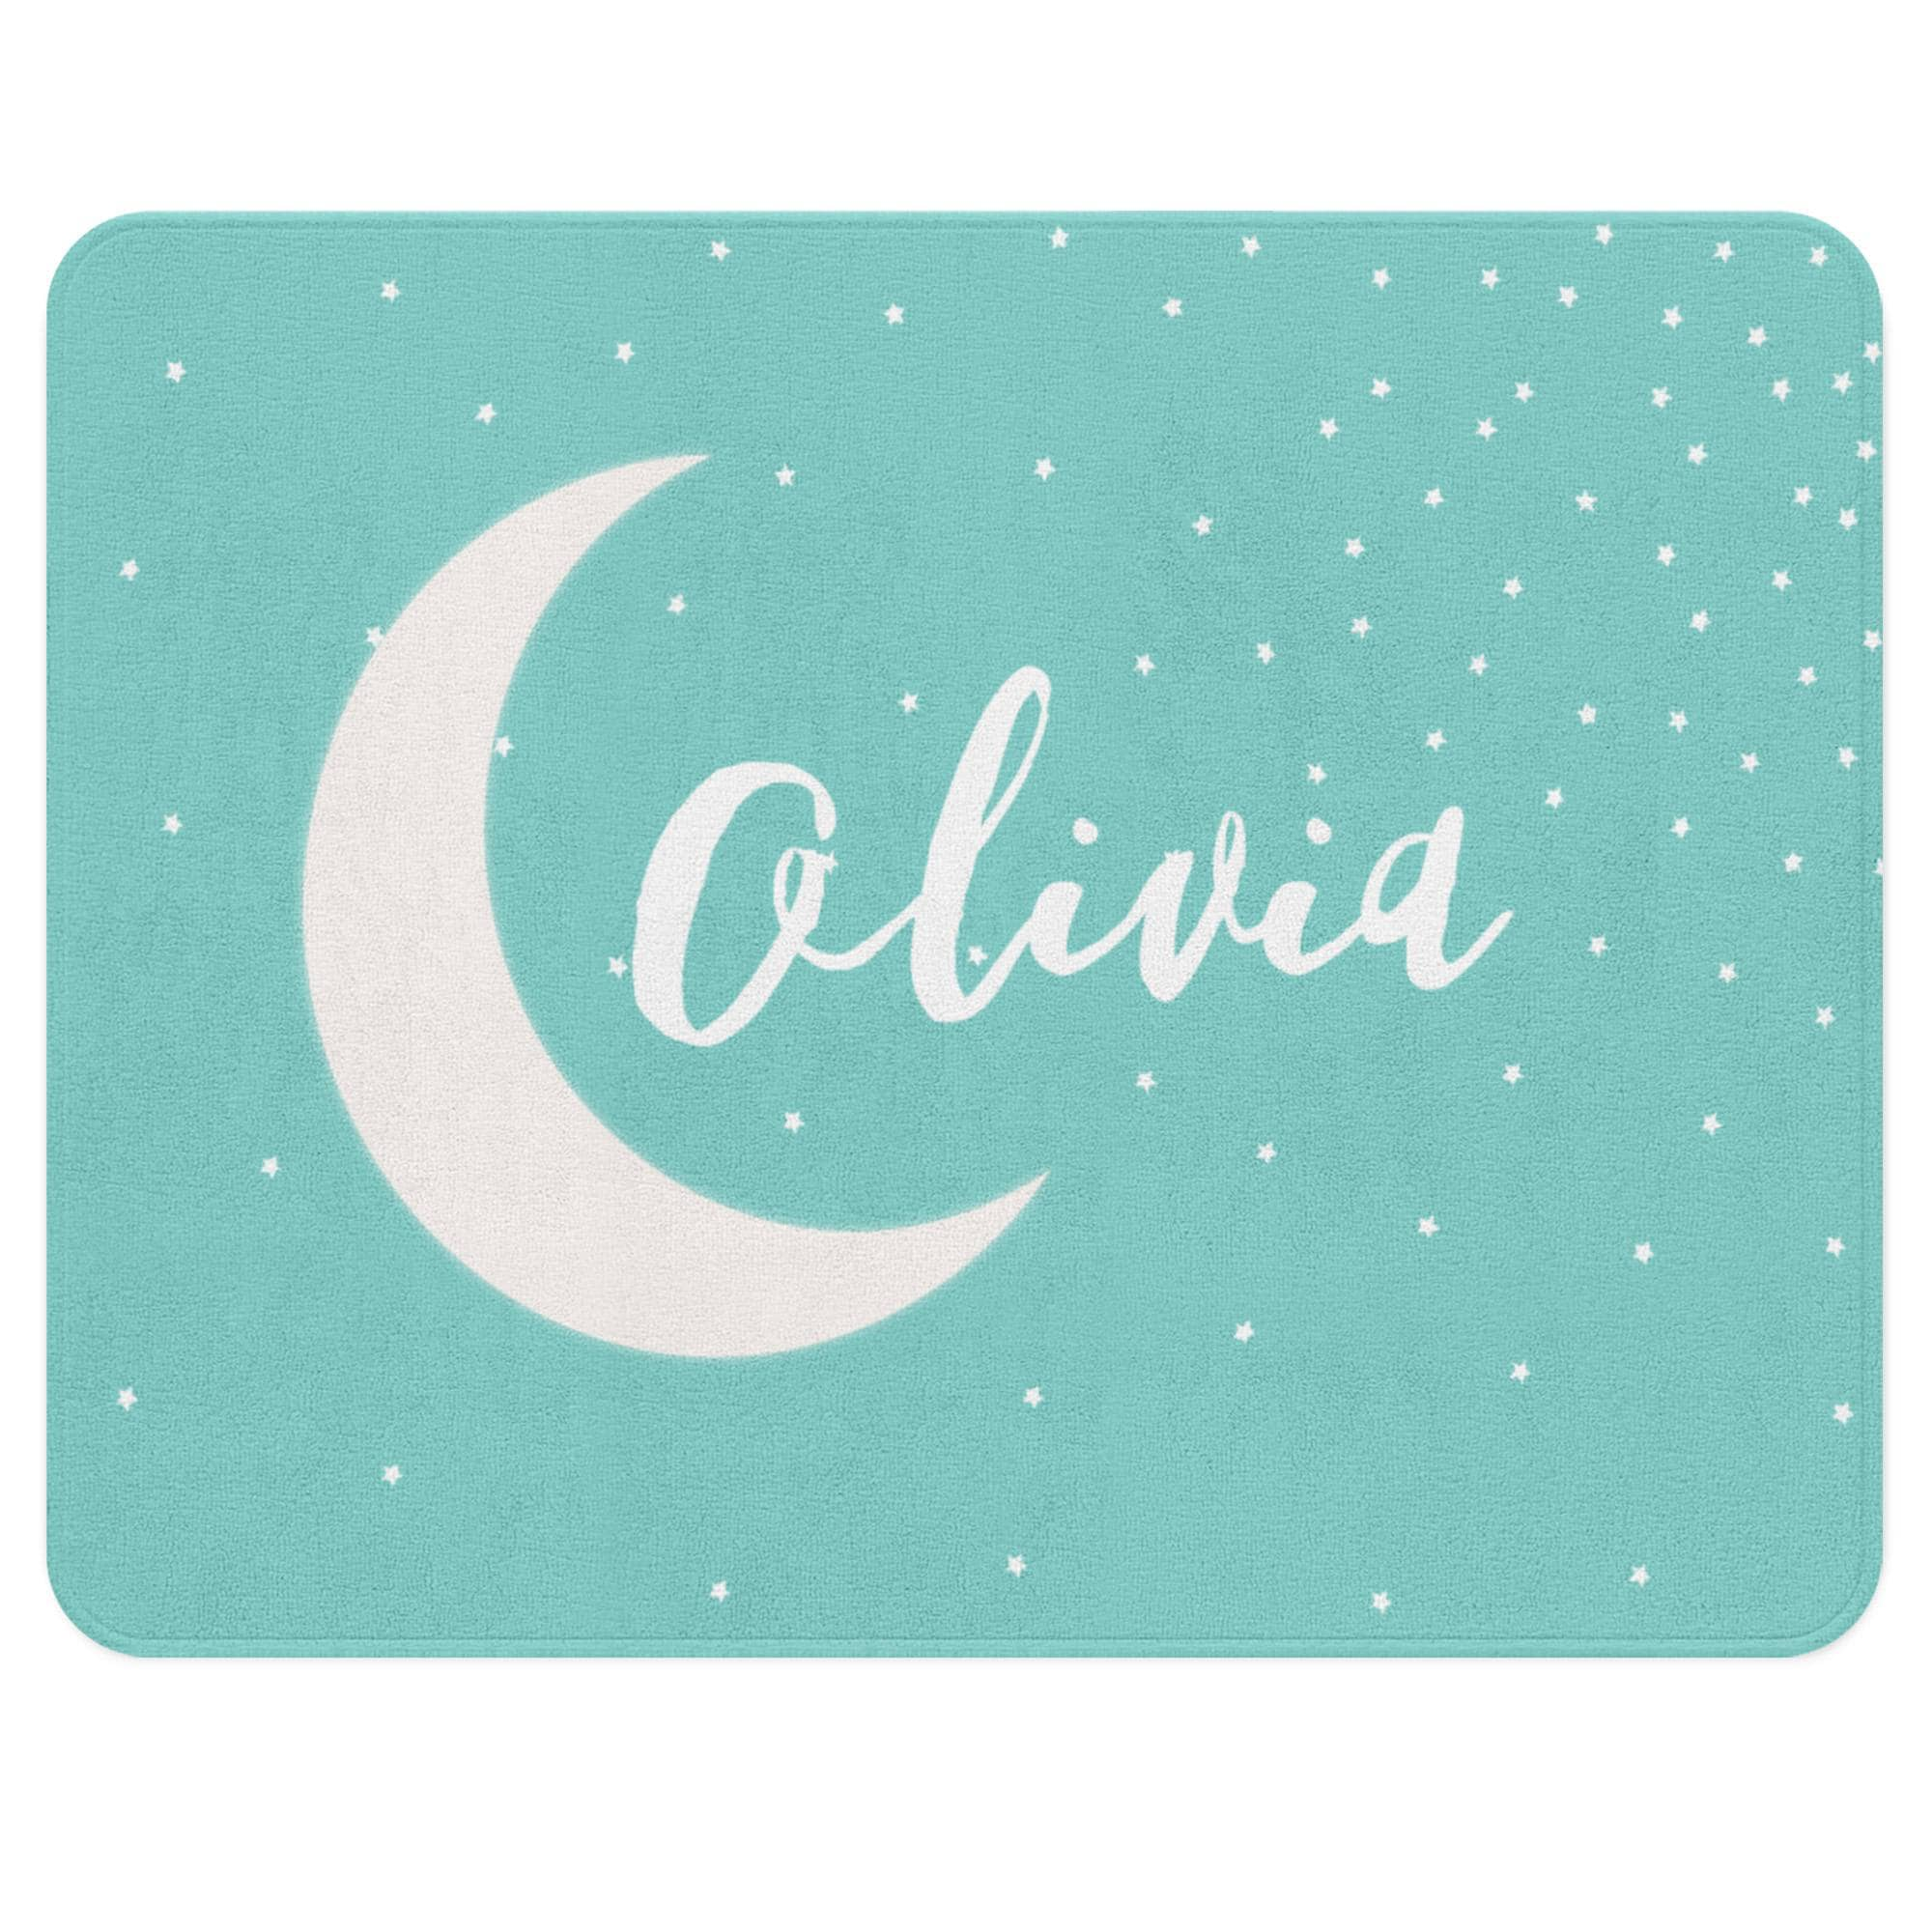 A teal rug with a stars sprinkled all over it. Customize it with your child's name floating gently over the moon in the center. Let this versatile piece add some calm to your little one's nursery.